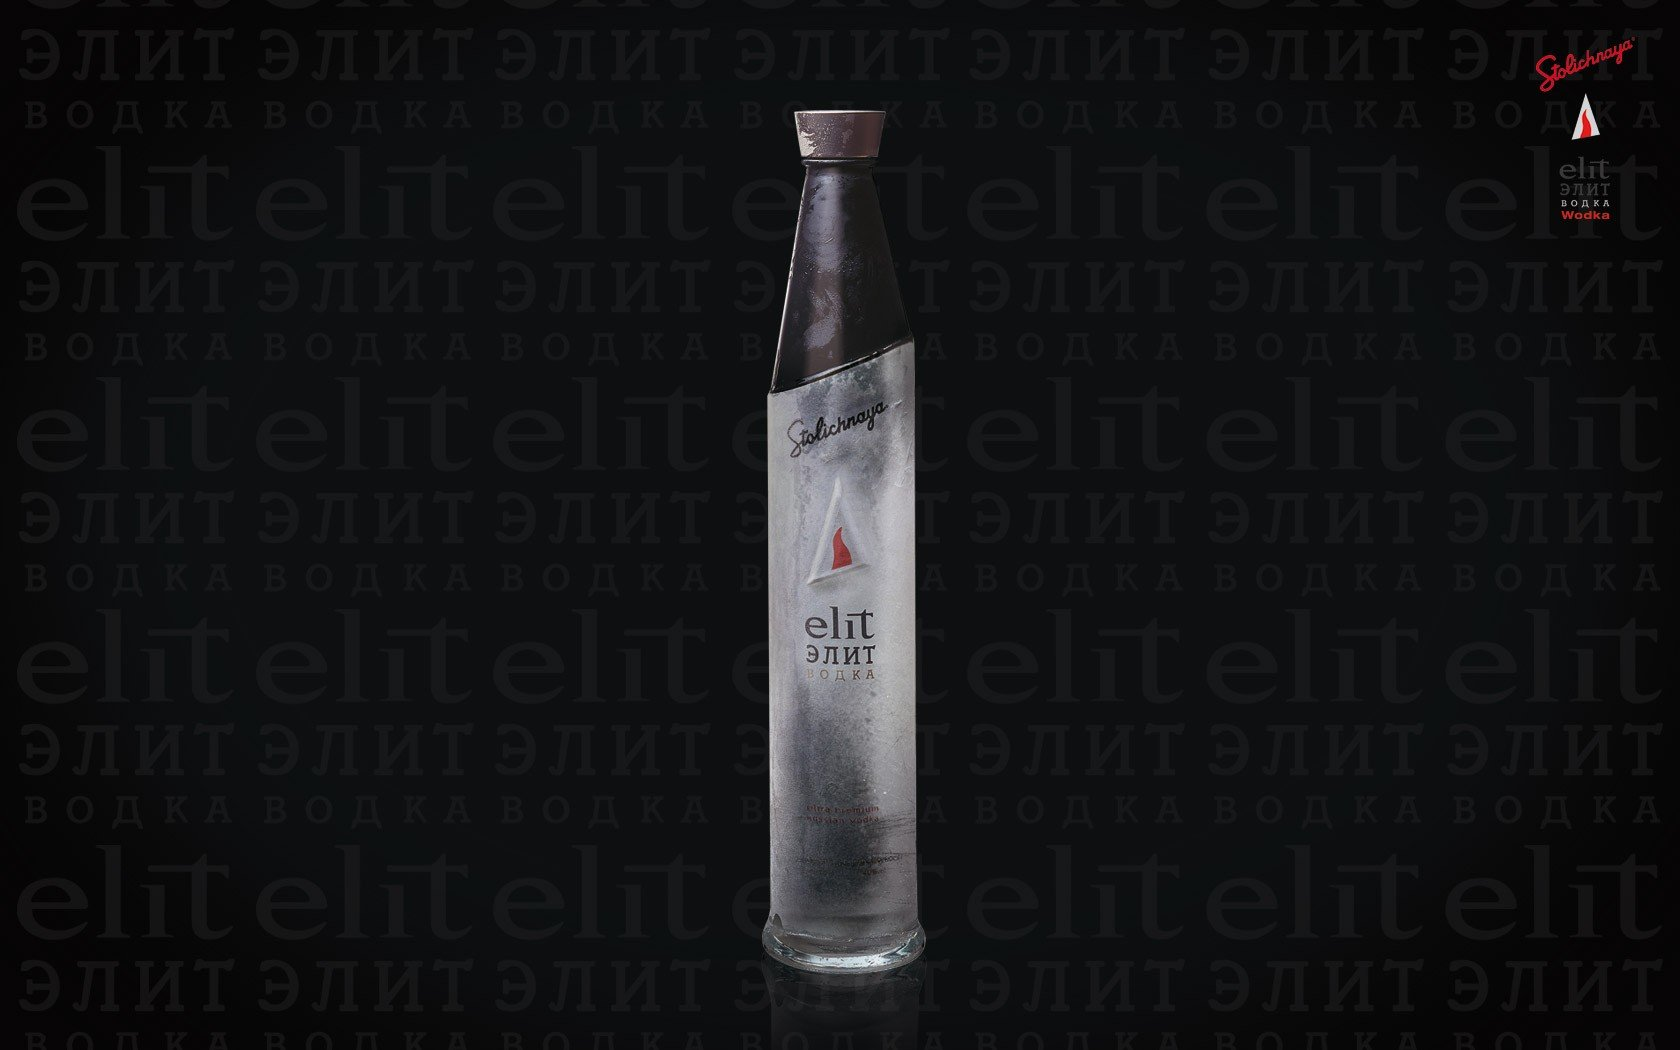 vodka alcohol liquor Stolichnaya gray background